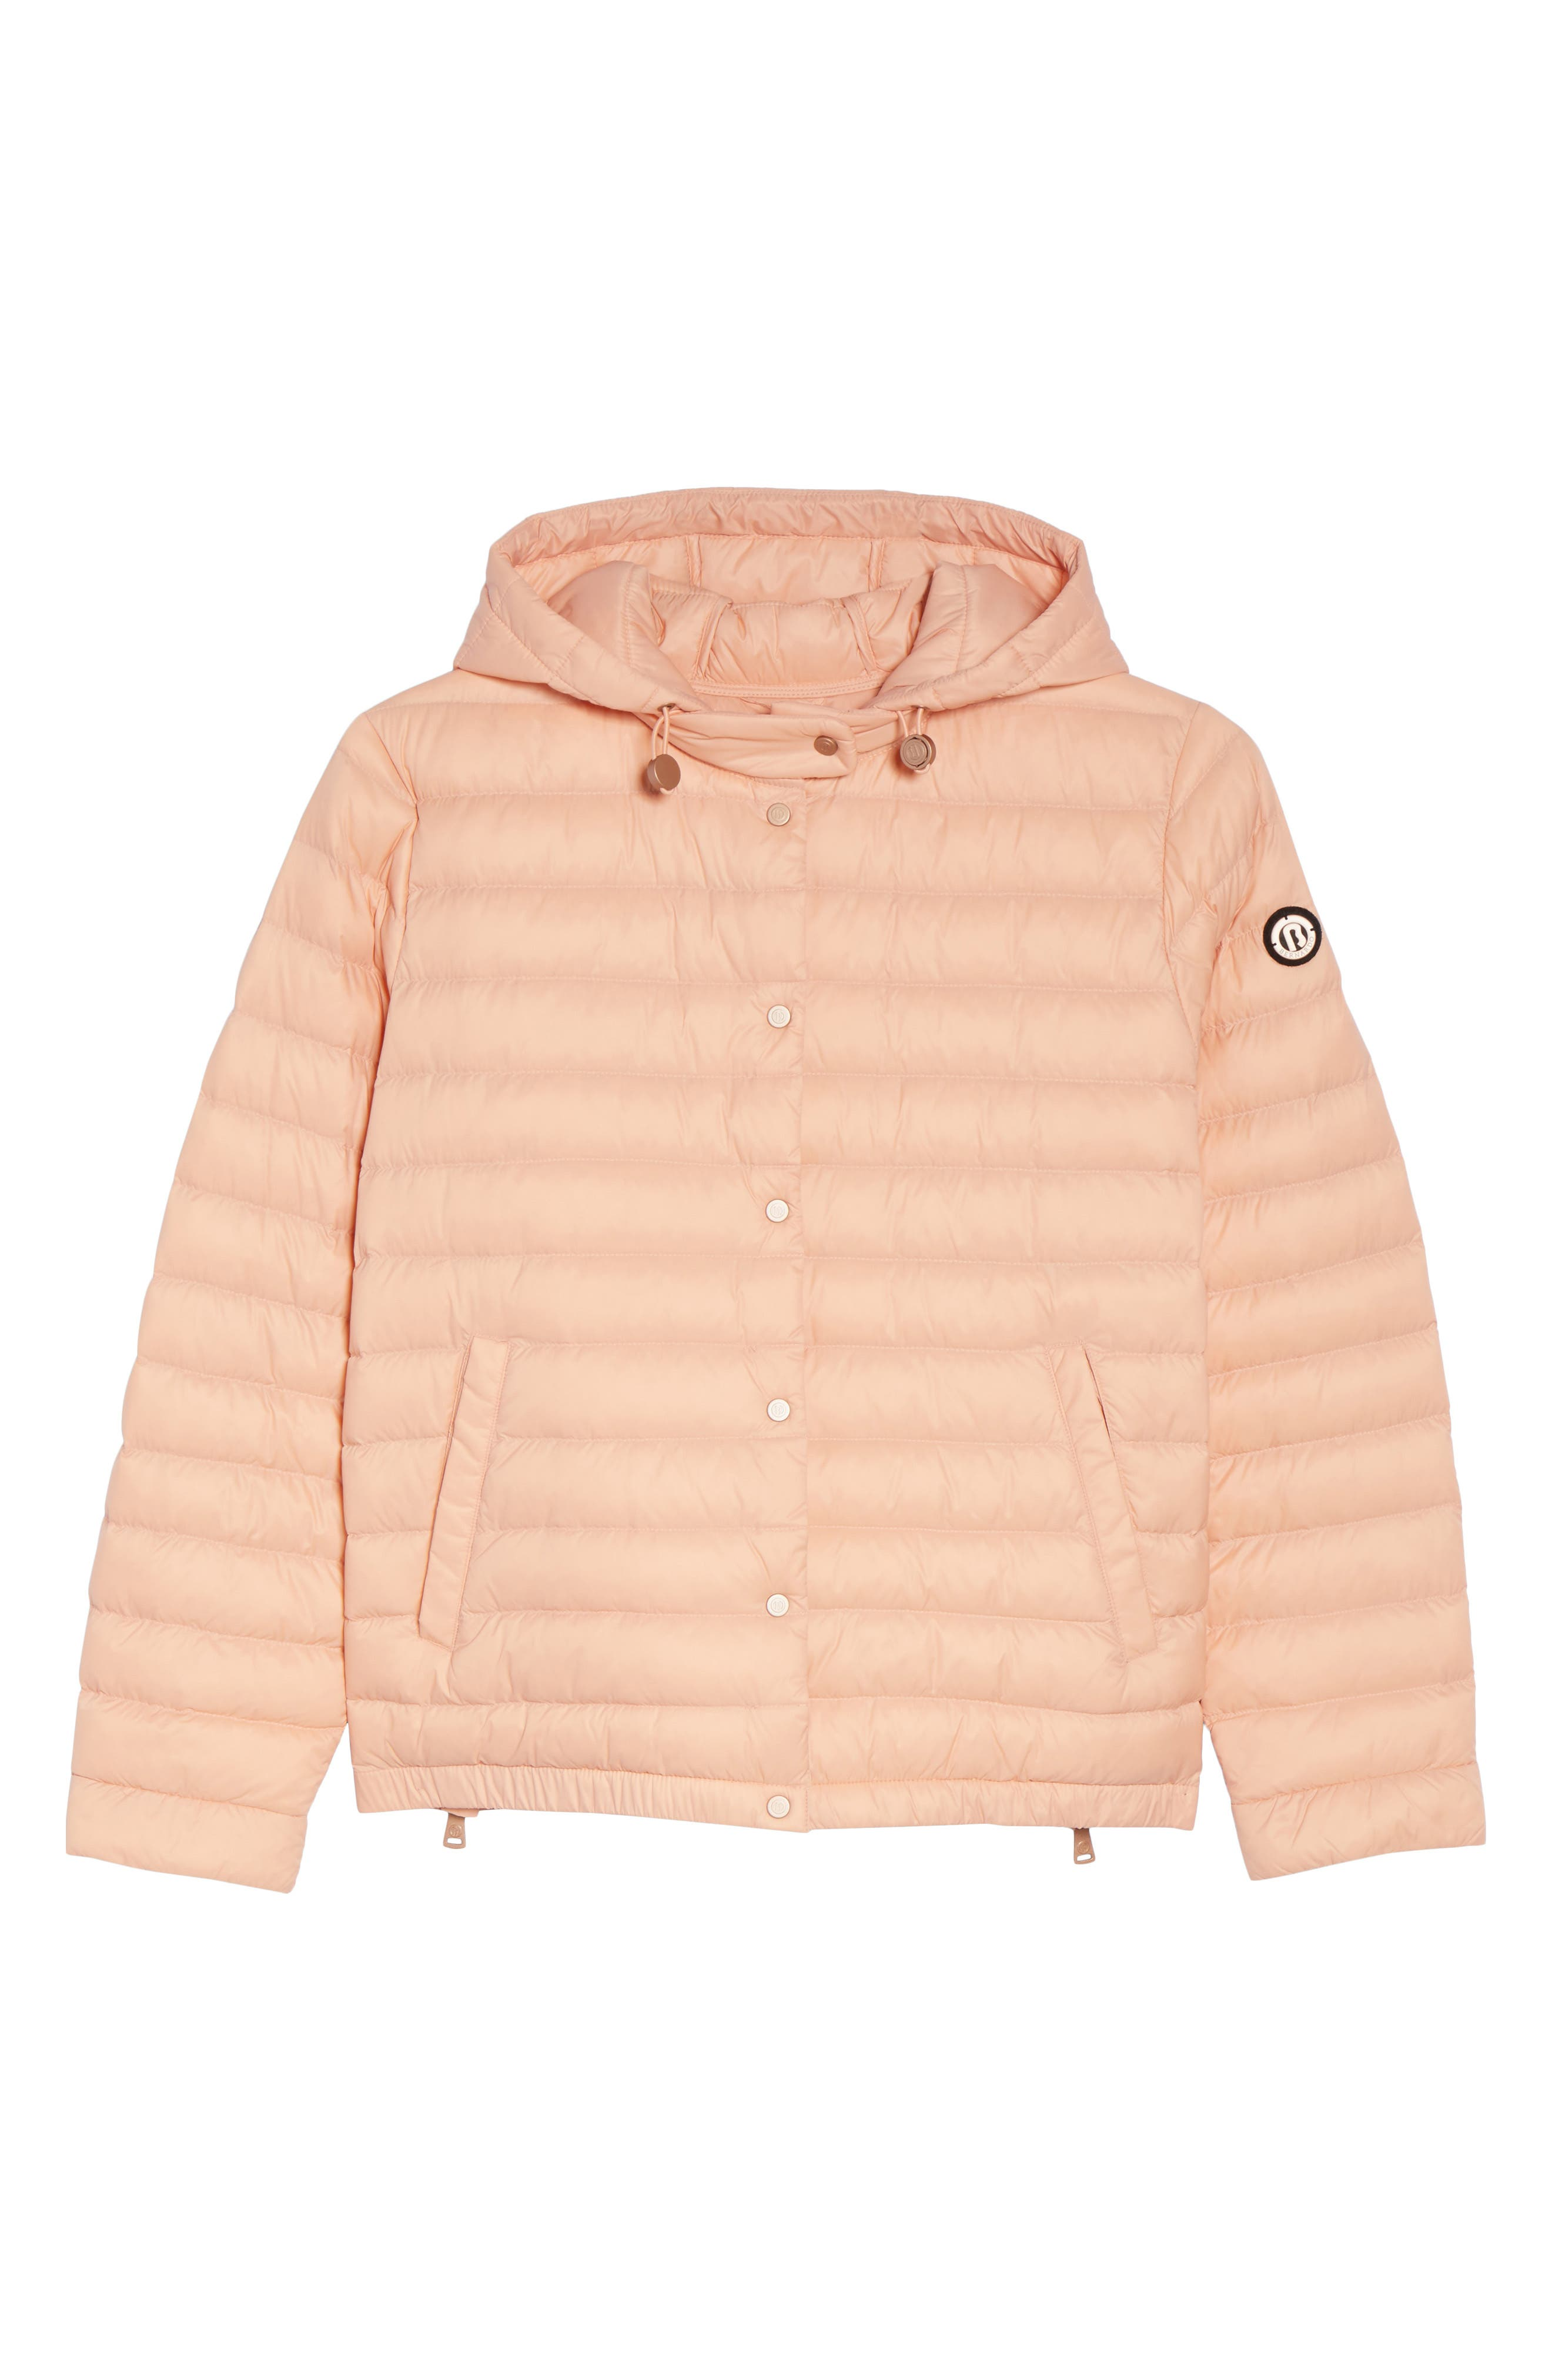 Water Resistant Insulated Hooded Bomber Jacket,                             Alternate thumbnail 6, color,                             Peach